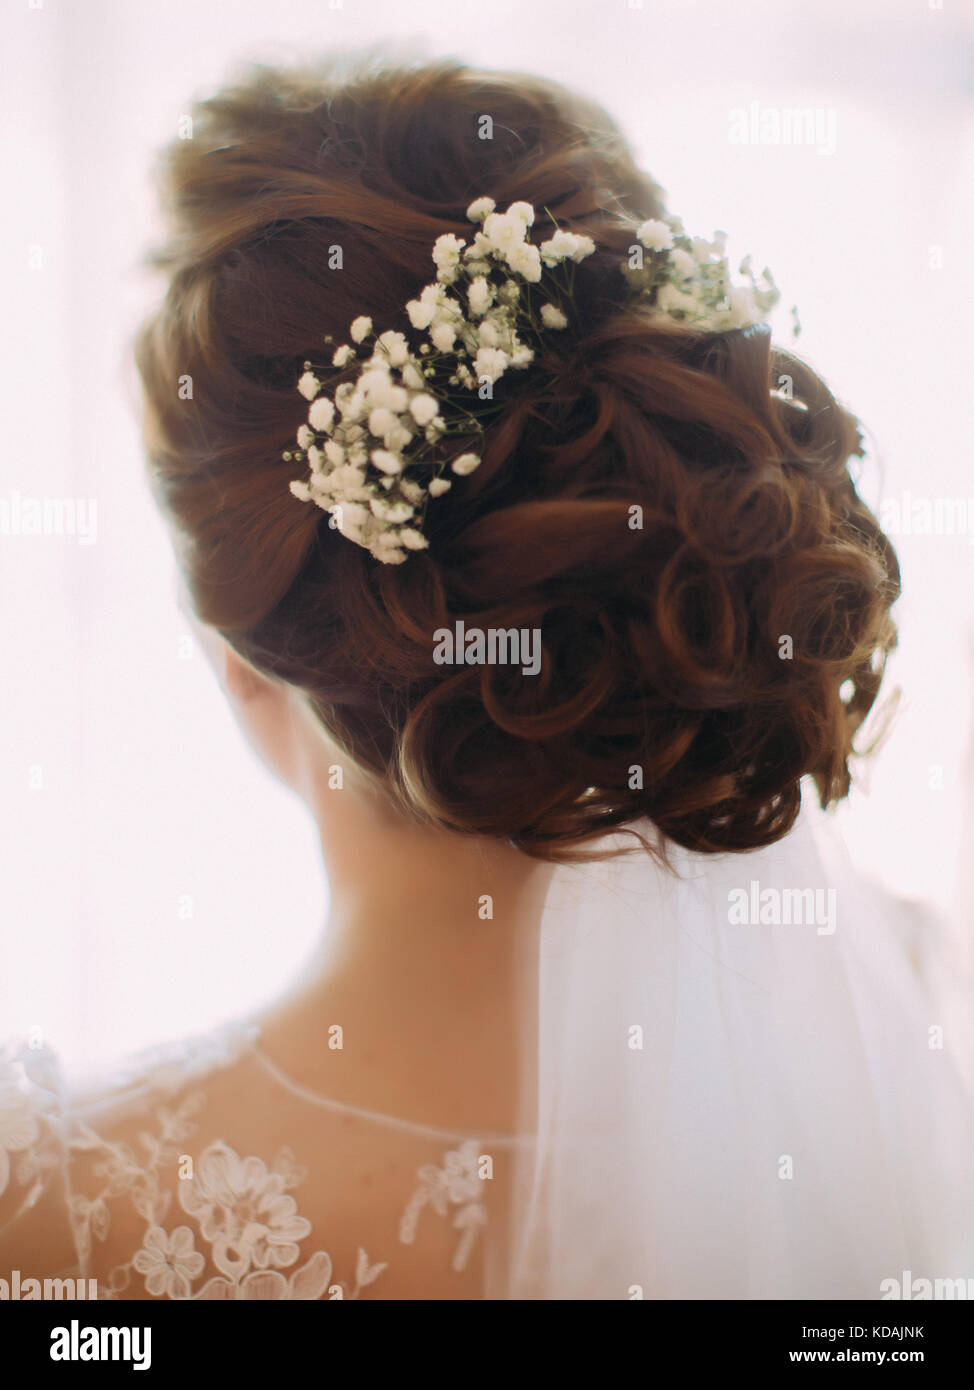 Hairstyle Head Bride Back Stock Photos Hairstyle Head Bride Back